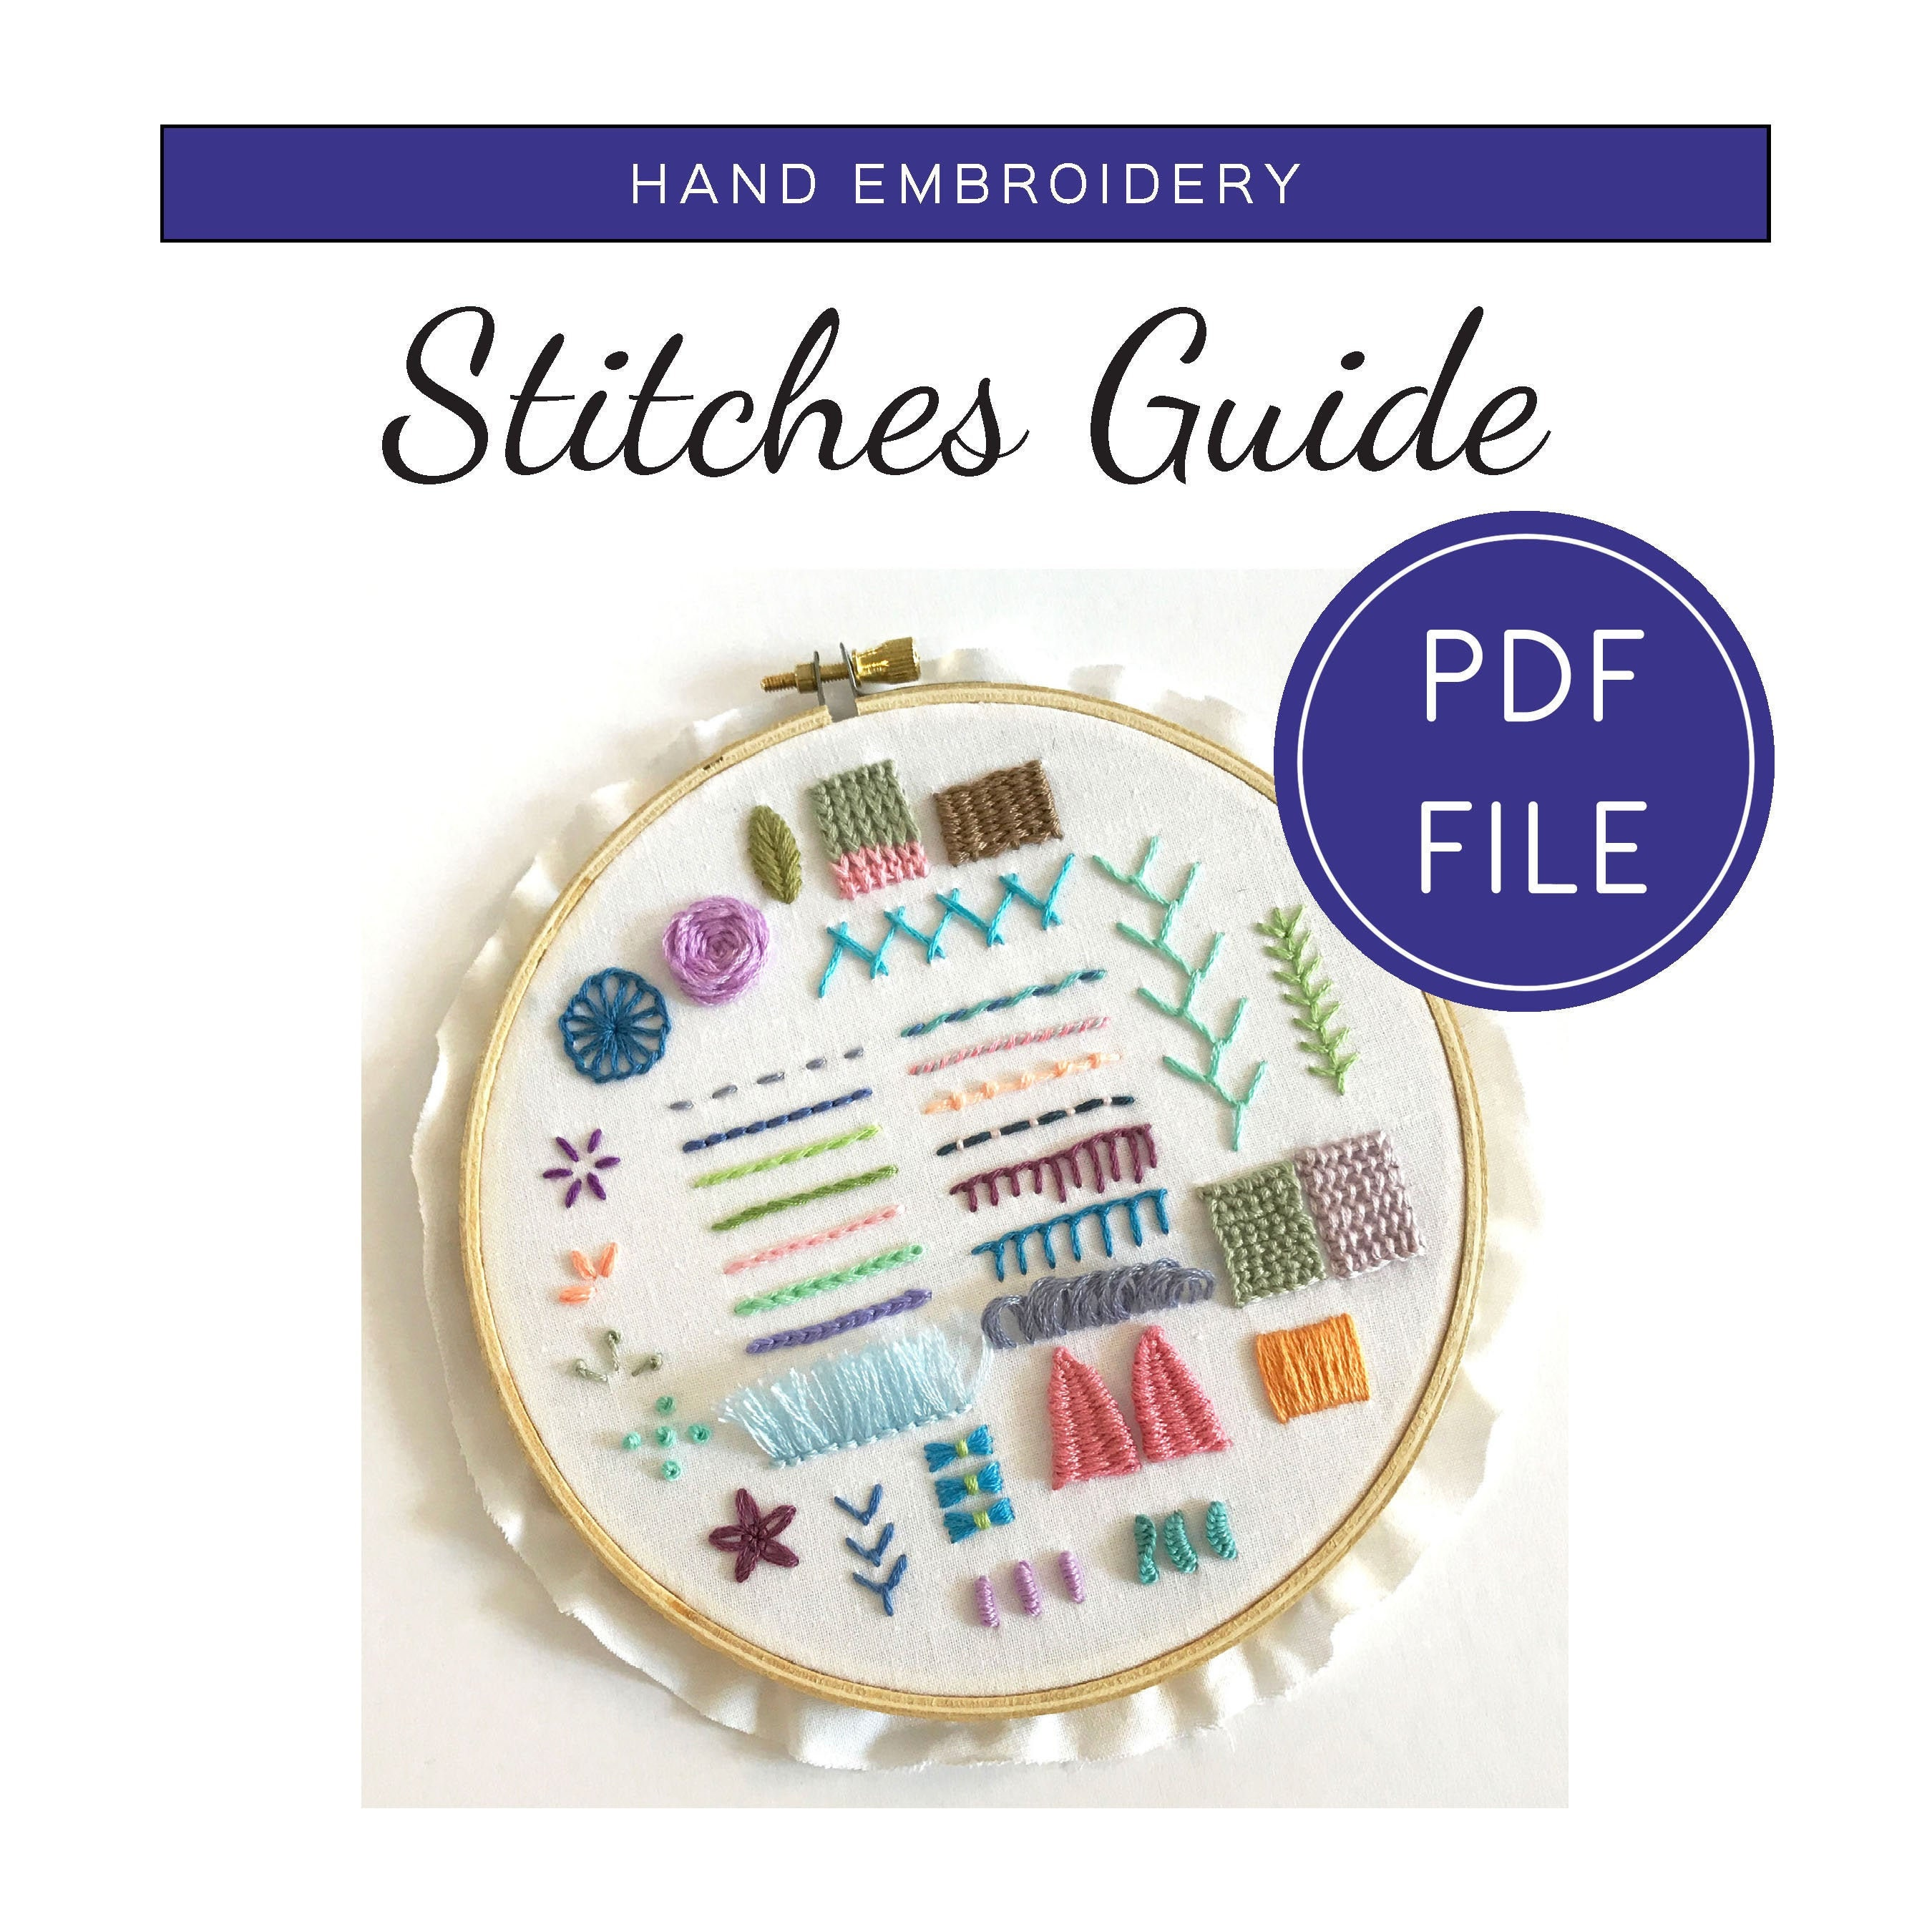 Hand Embroidery Stitches Guide PDF Download, How to Stitch Book DIY Guide,  Book Digital Download, Printable Hand Embroidery Pattern PDF